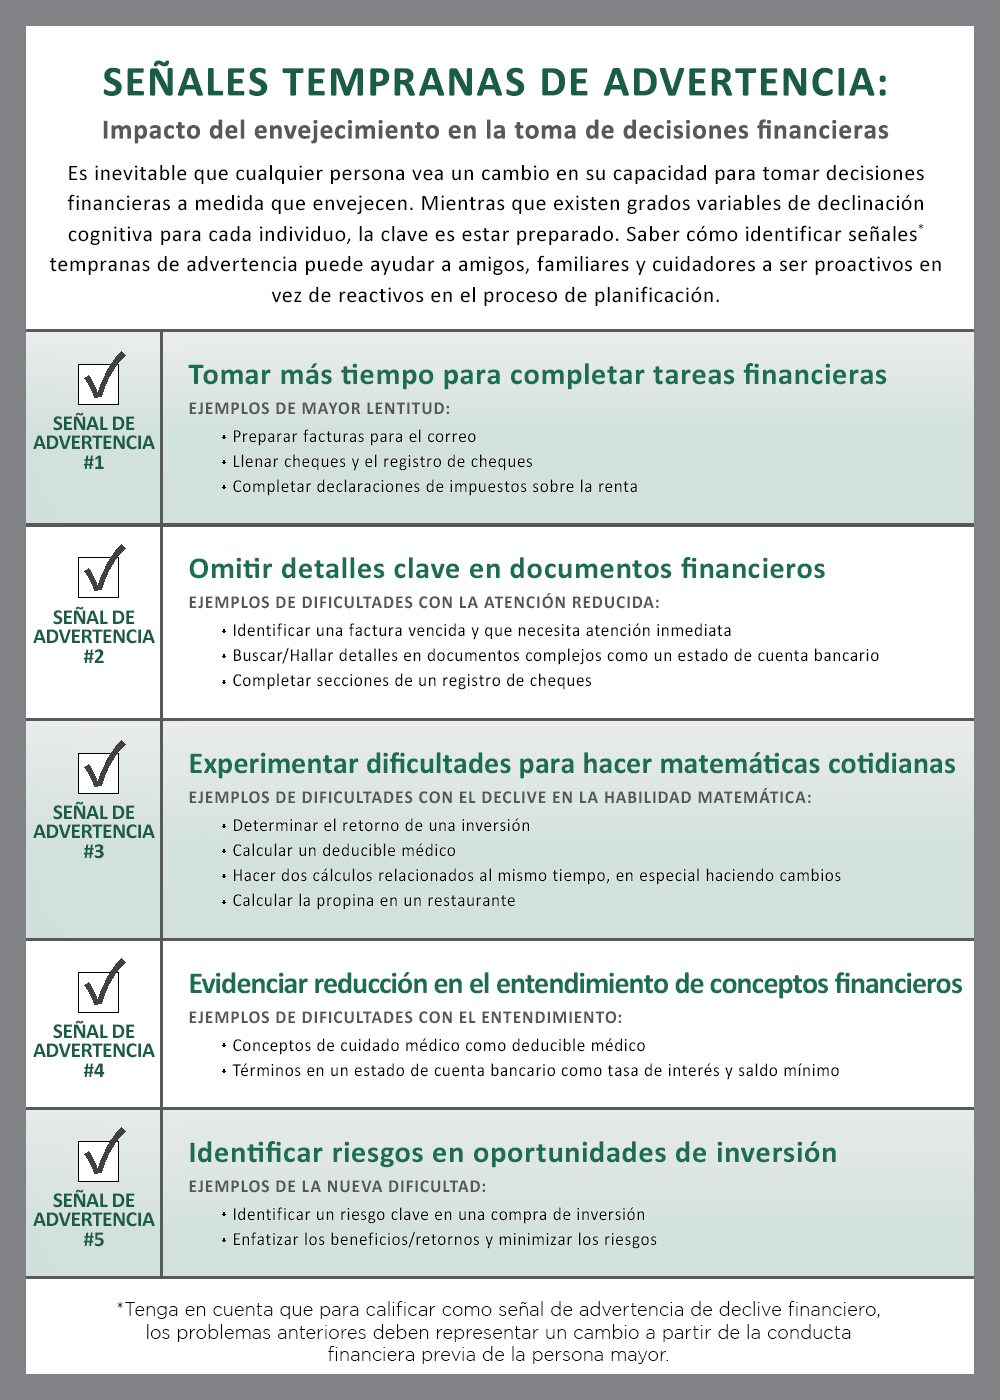 Señales tempranas de advertencia (infografía) - ver texto alternativo